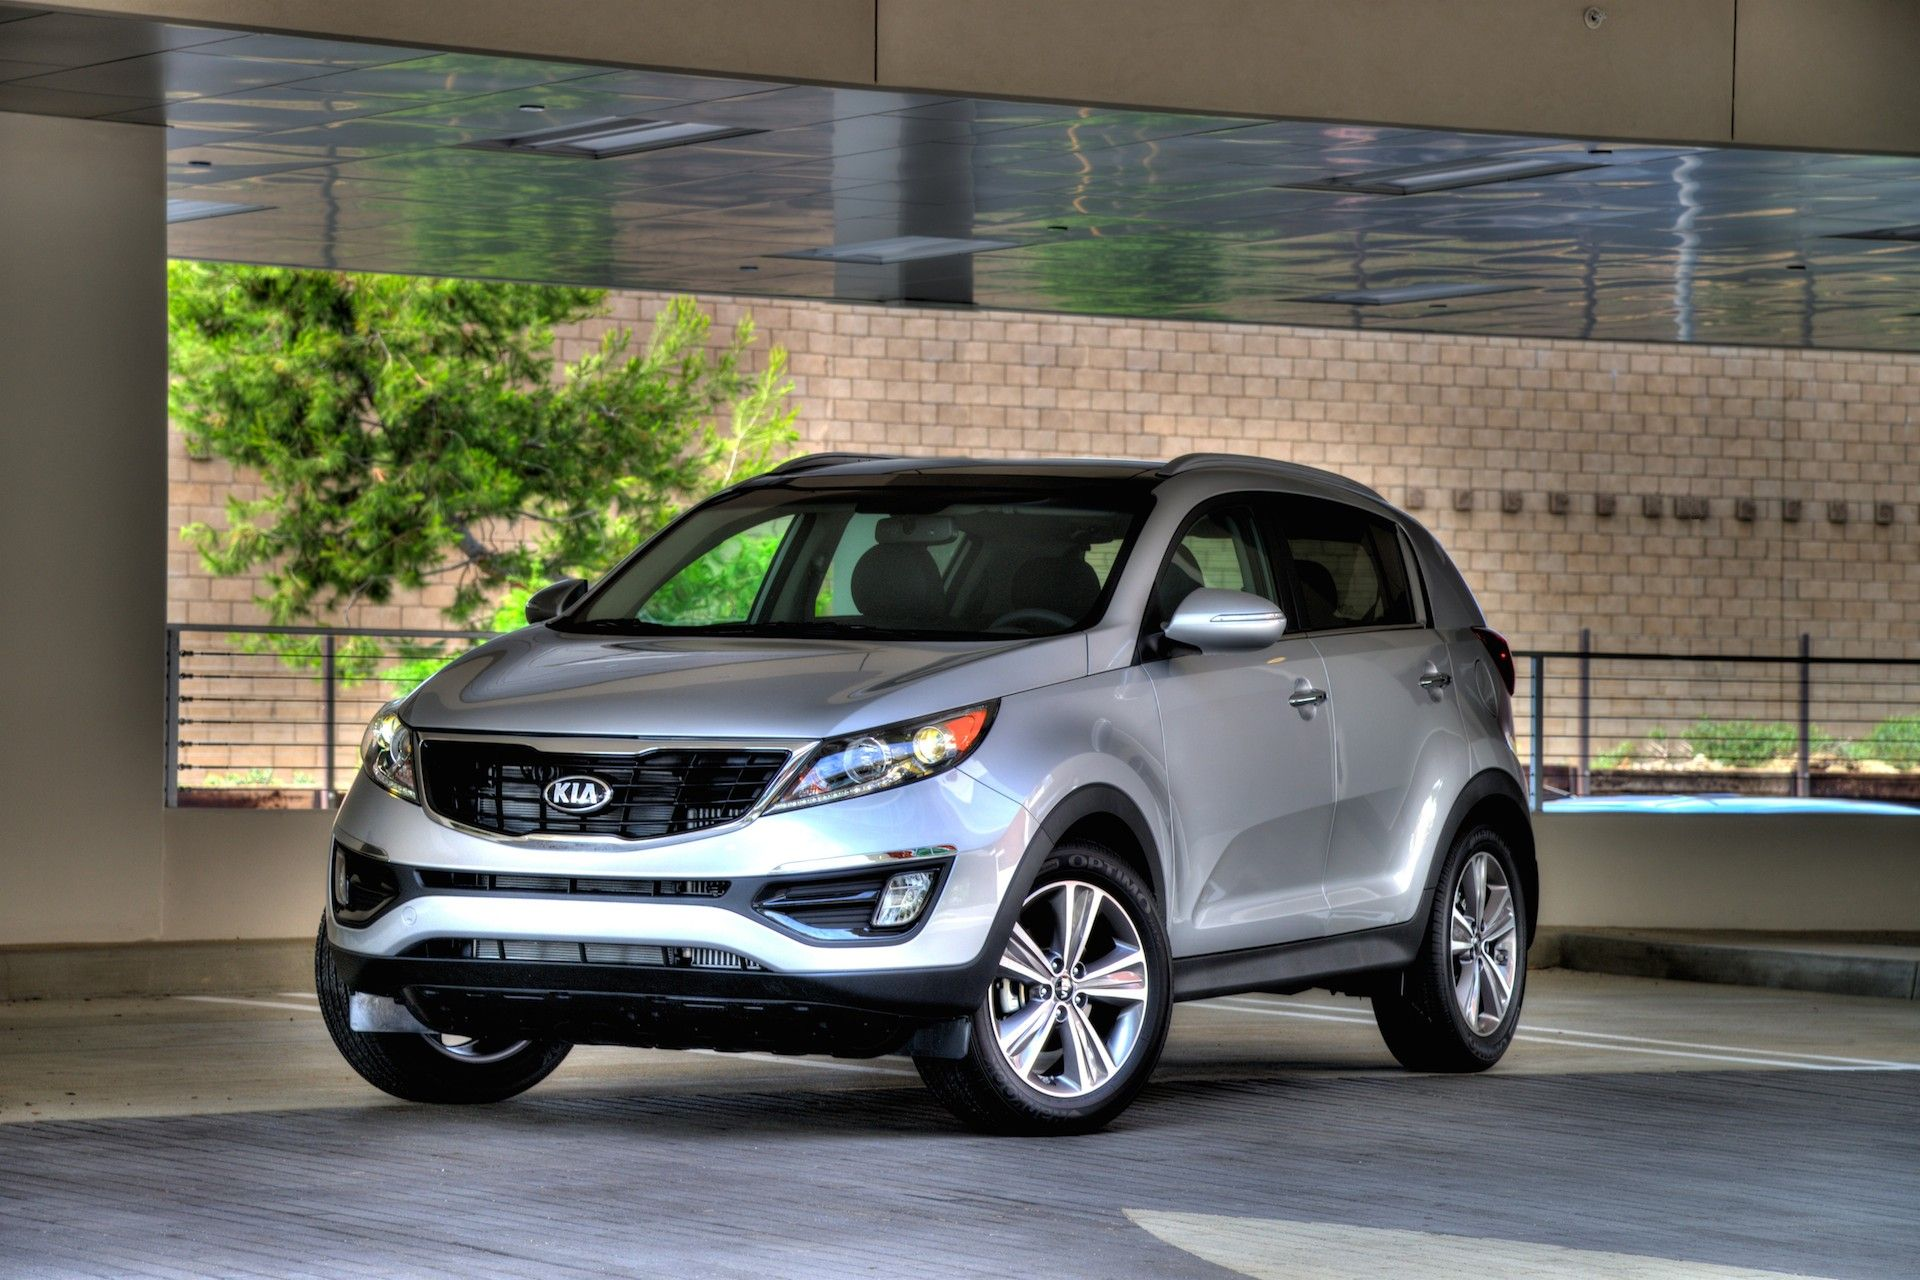 Pin by Pixy Cars on Pixy Cars Kia sportage, Reliable